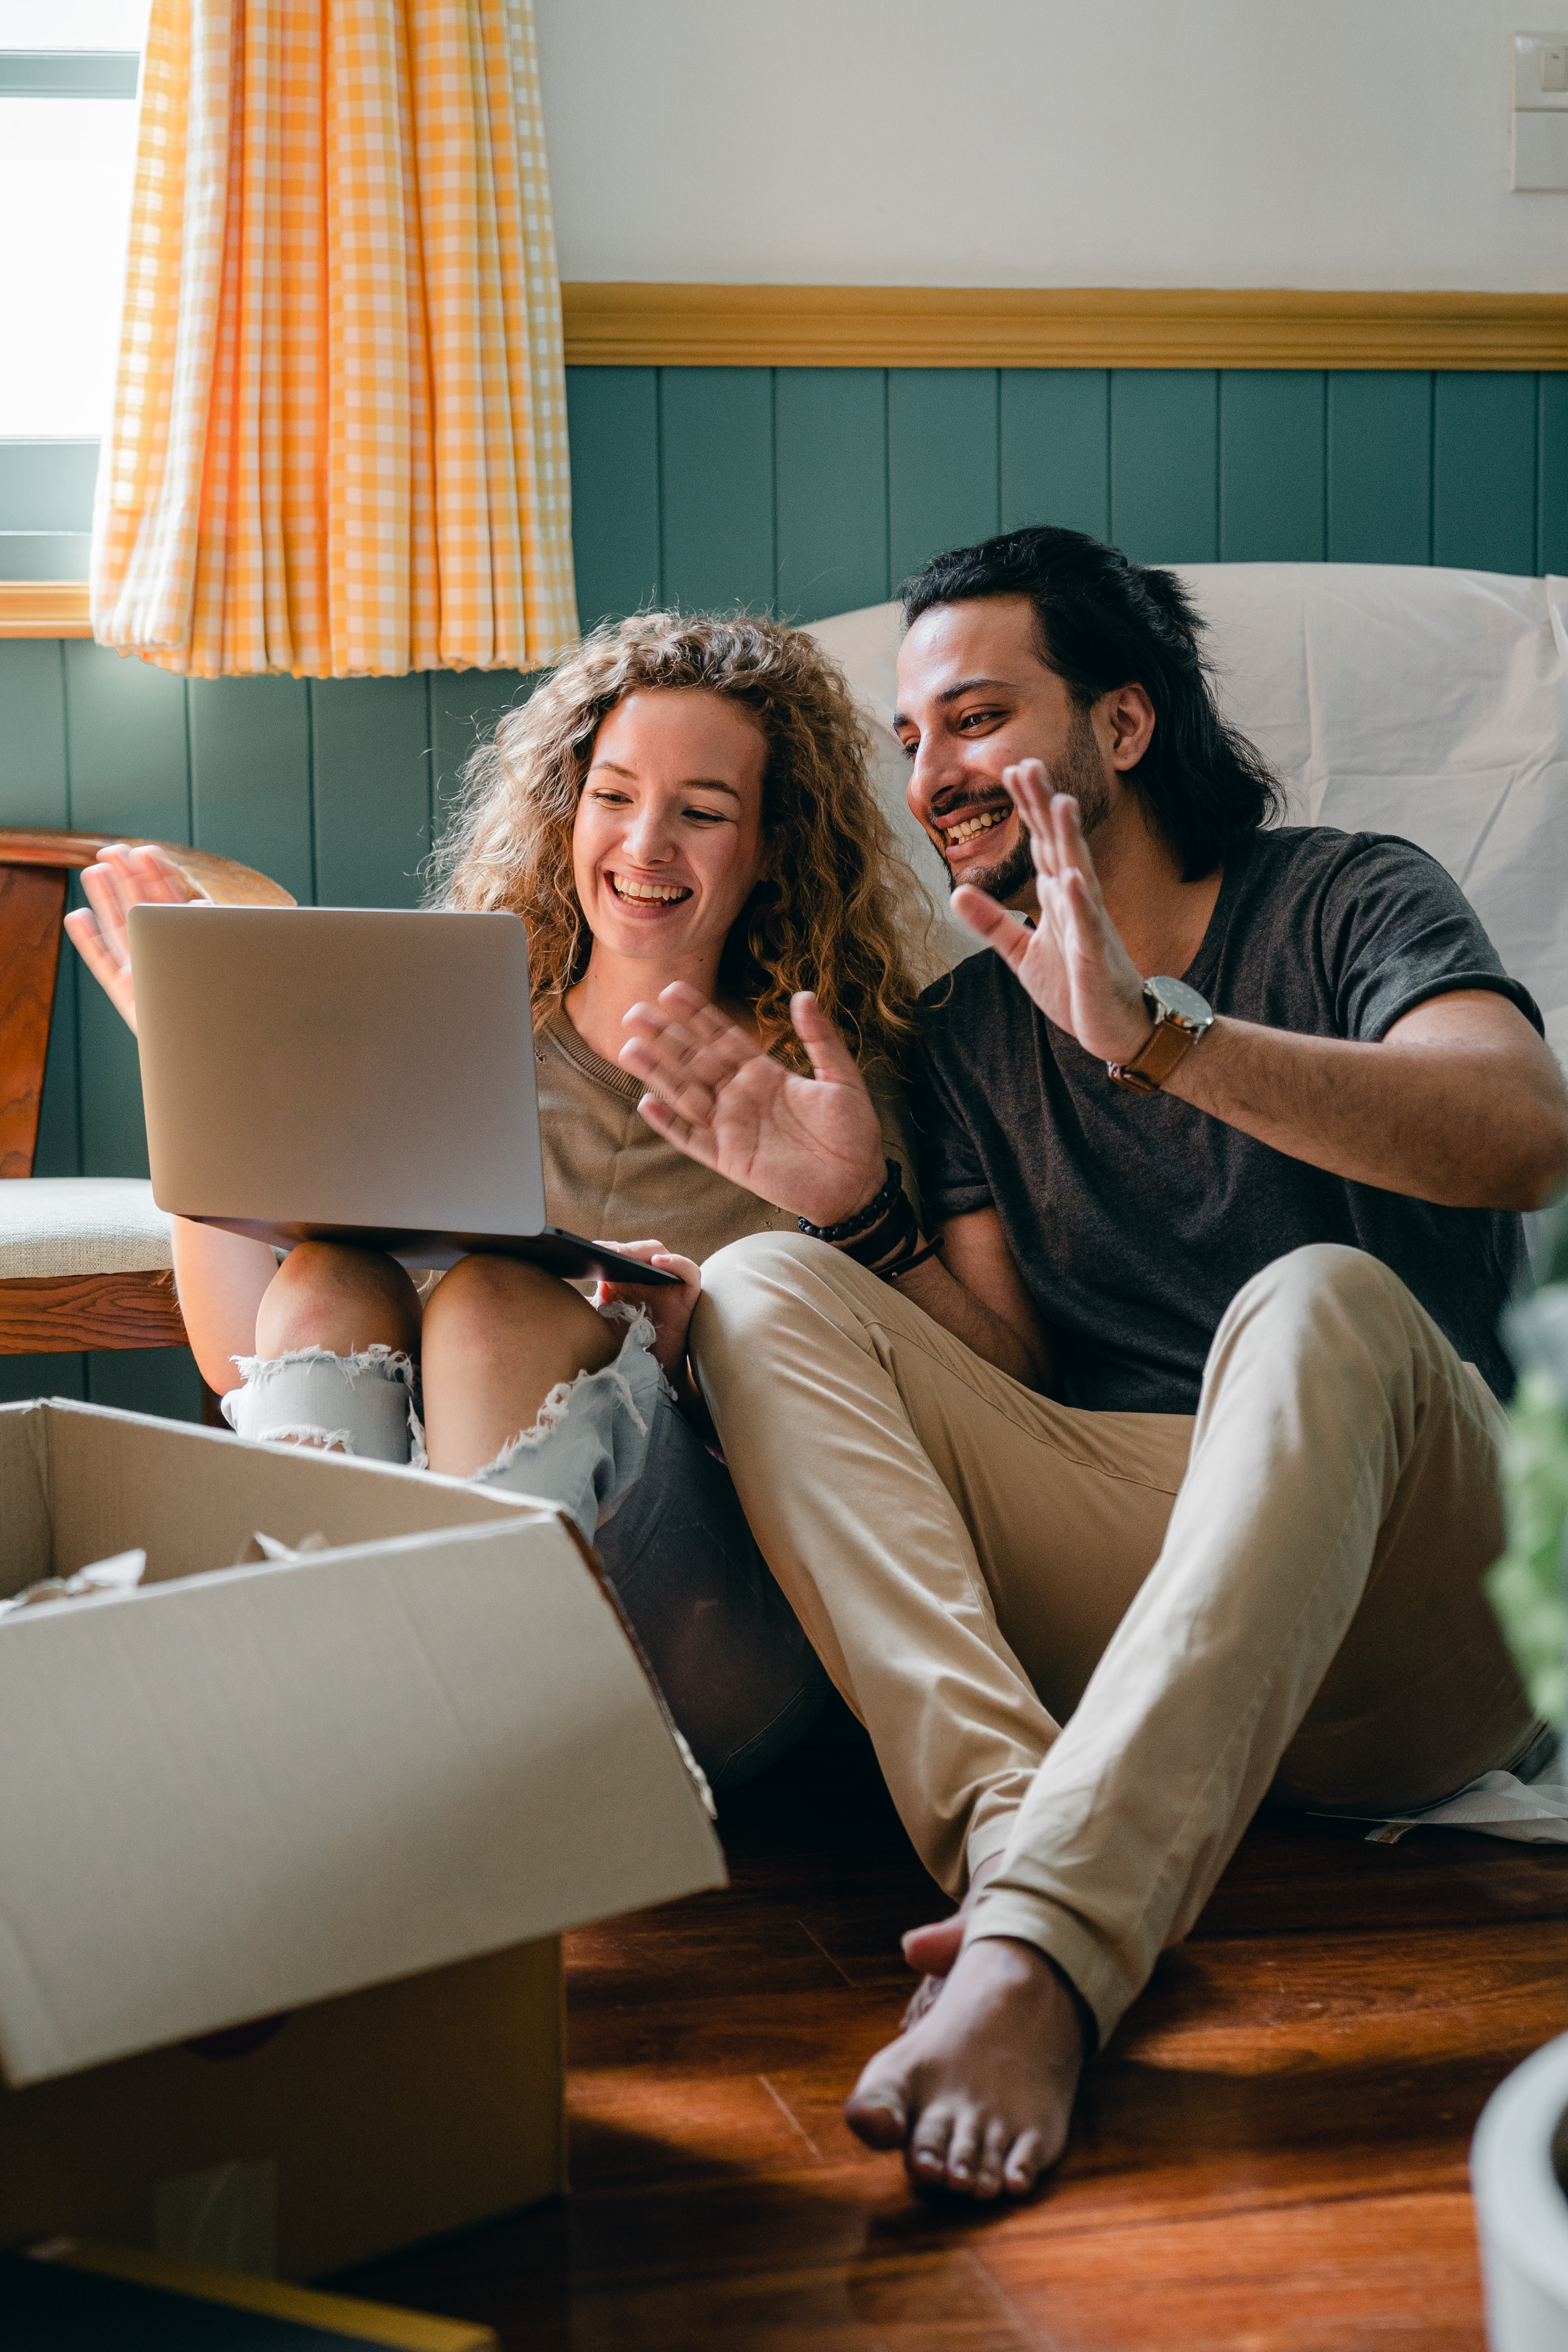 Online platforms to connect with loved ones